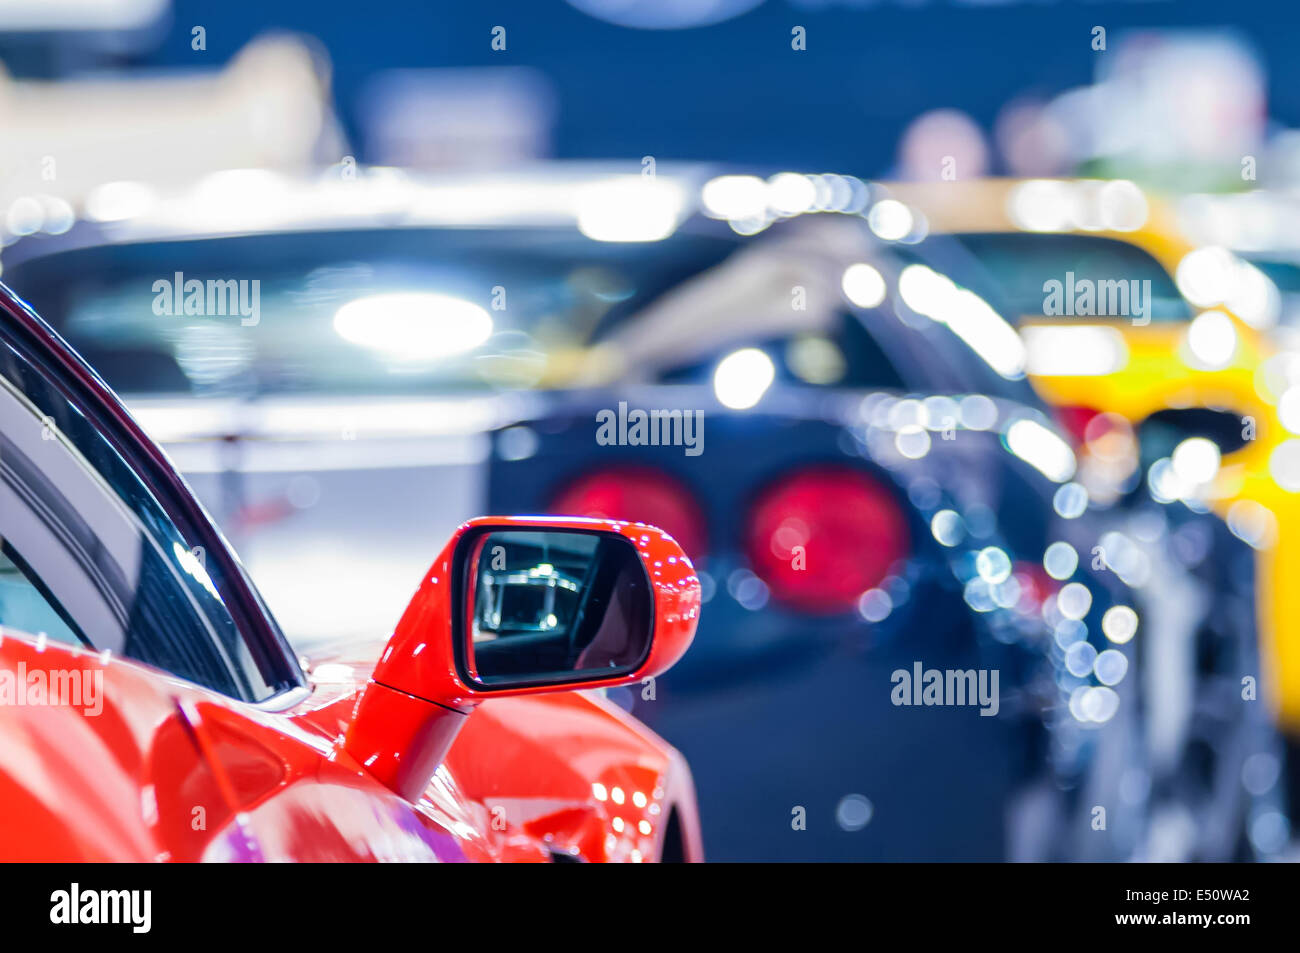 cars on display at an autoshow - Stock Image